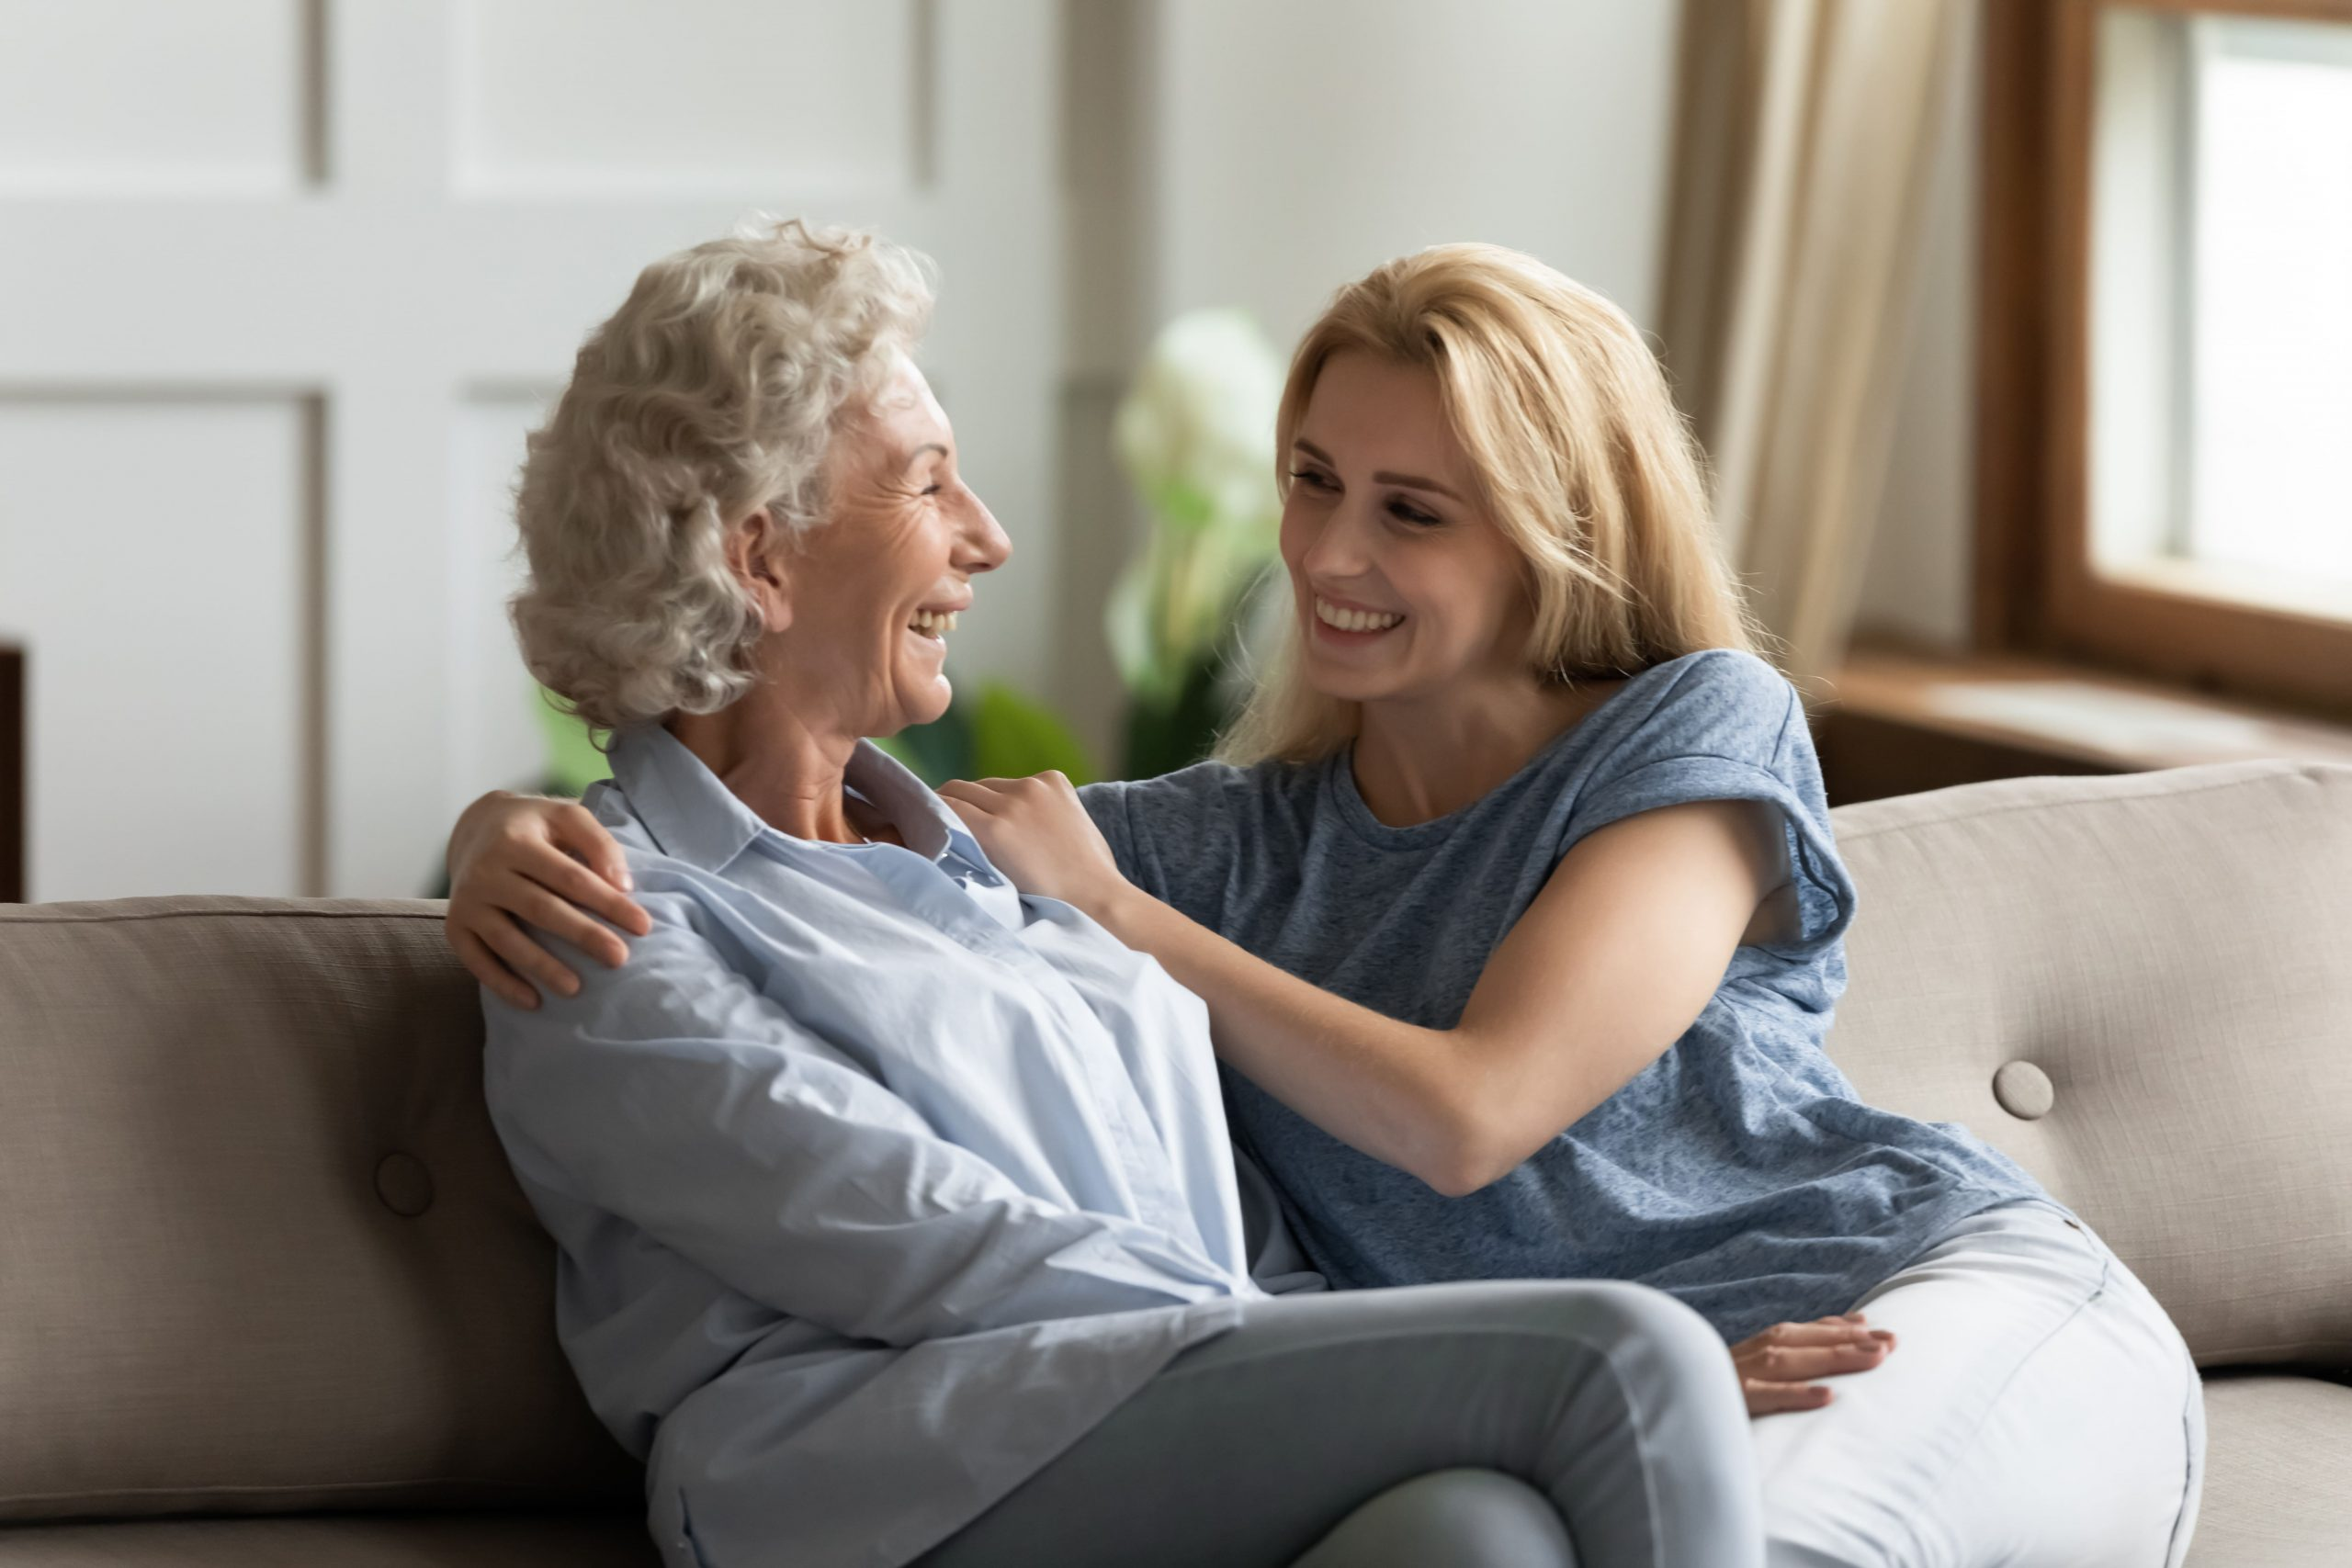 Mother and adult daughter sitting on couch talking and smiling